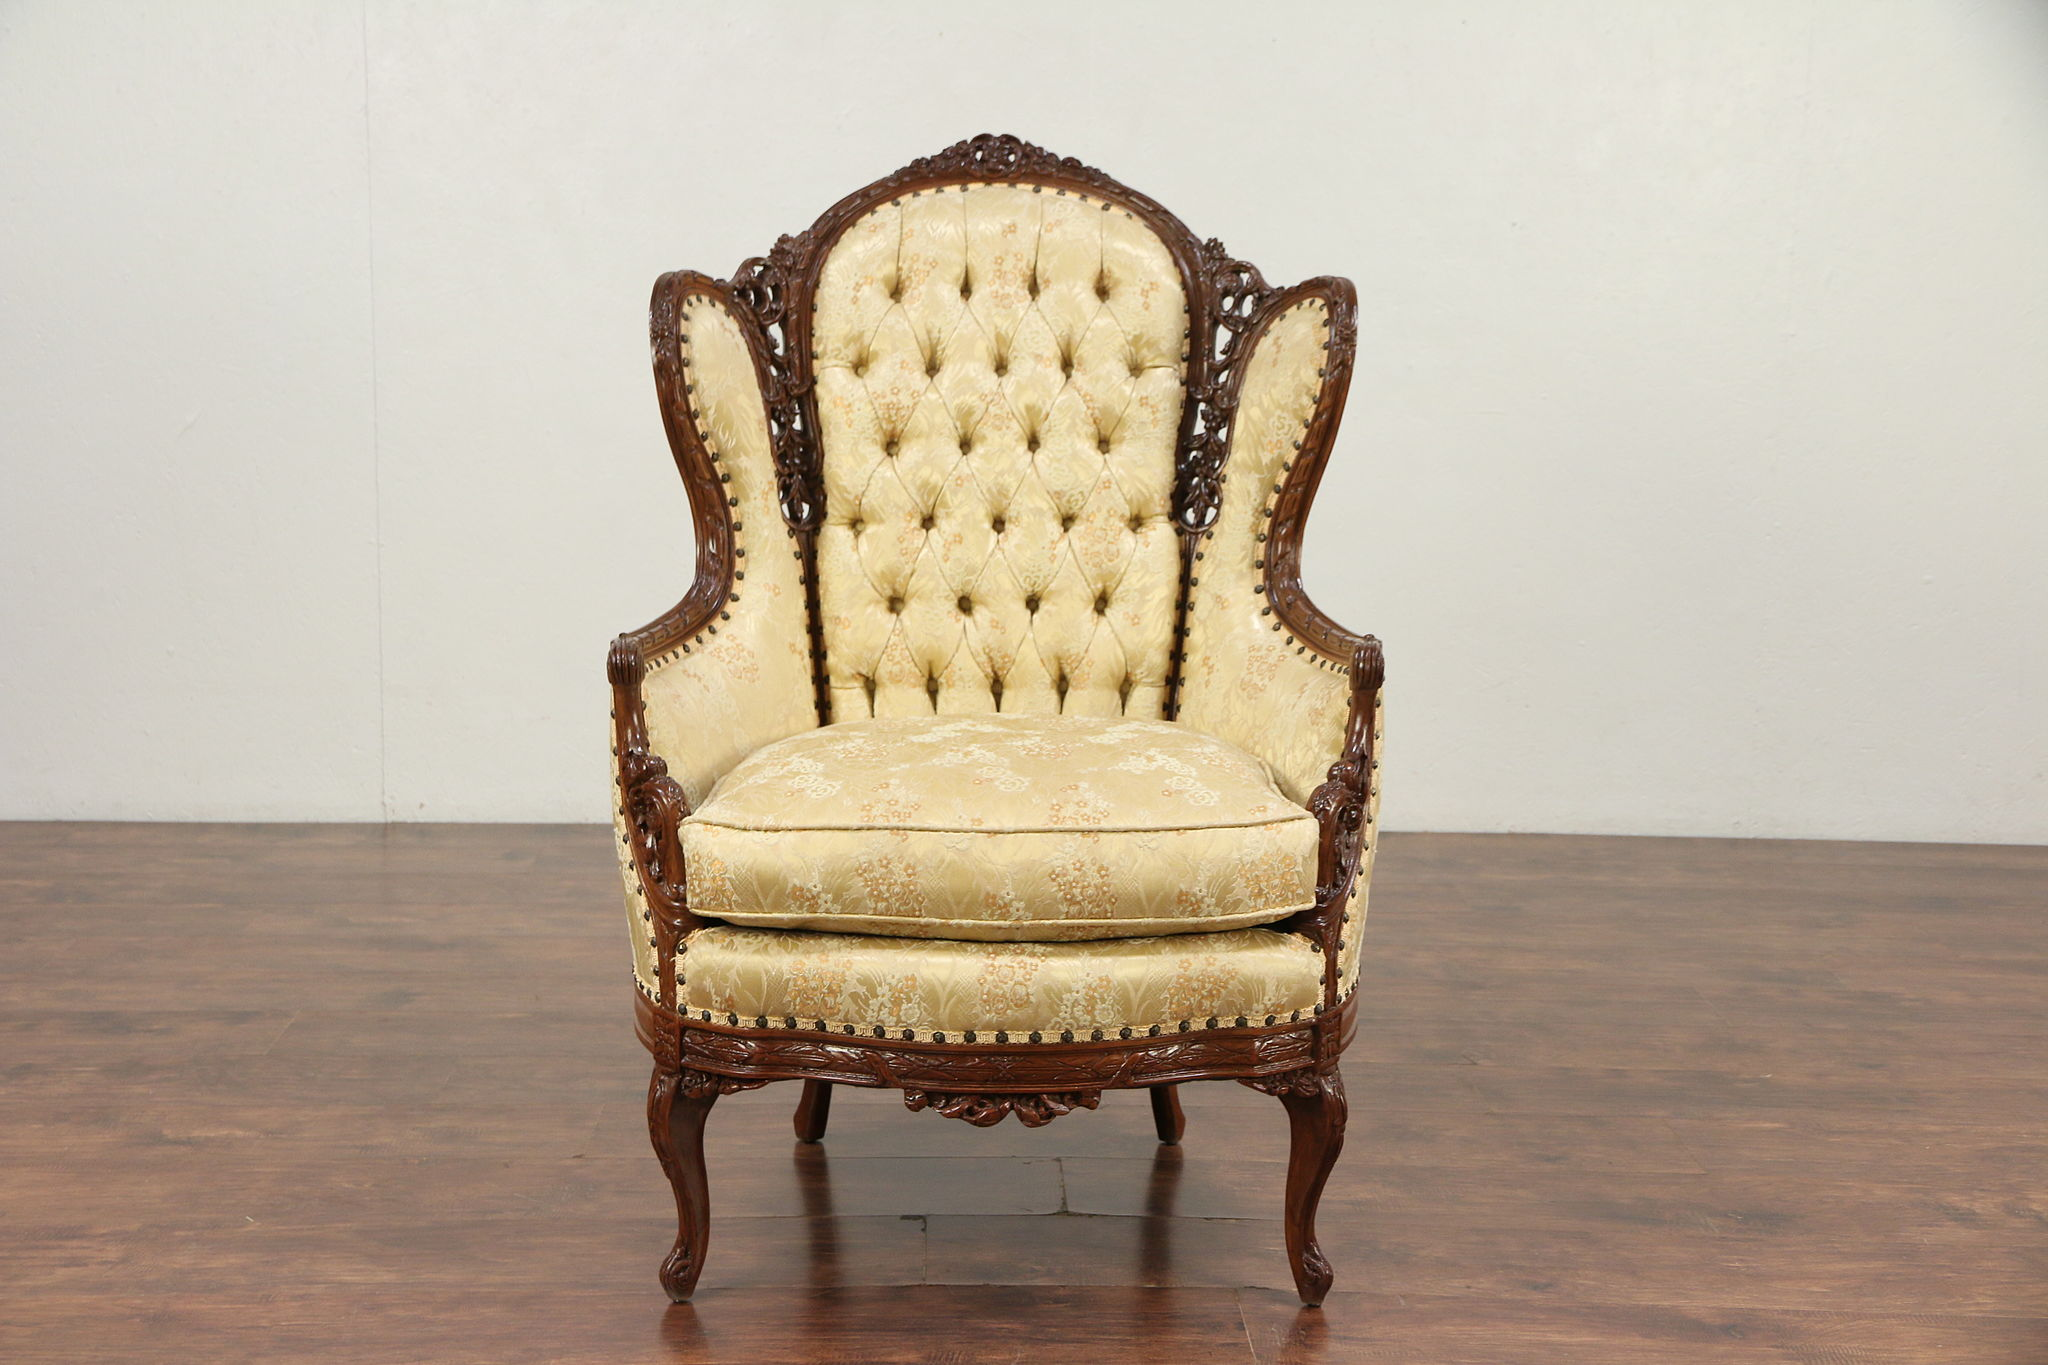 Merveilleux Carved 1940u0027s Vintage French Style Wing Chair #29684 ...